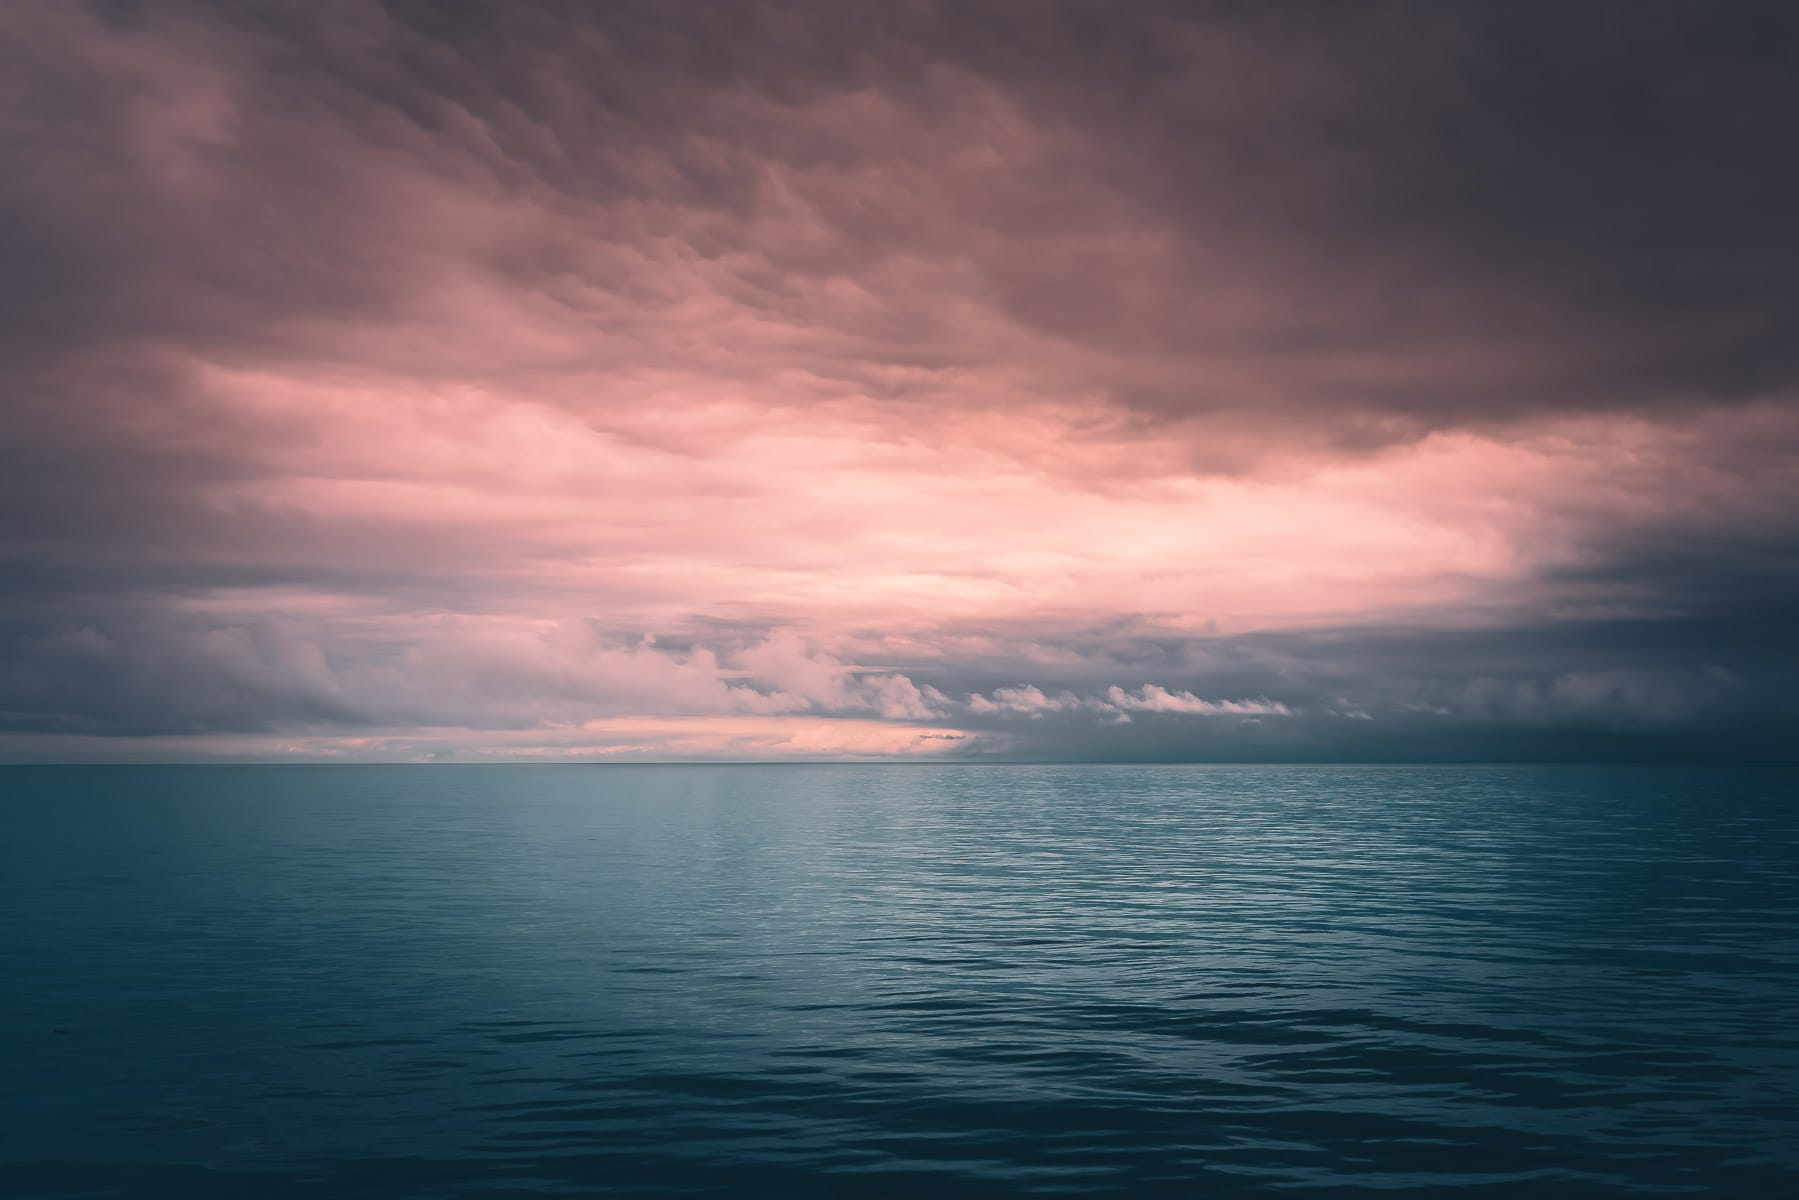 A cloudy morning on the North Pacific Ocean off the coast of Vancouver Island, Canada.